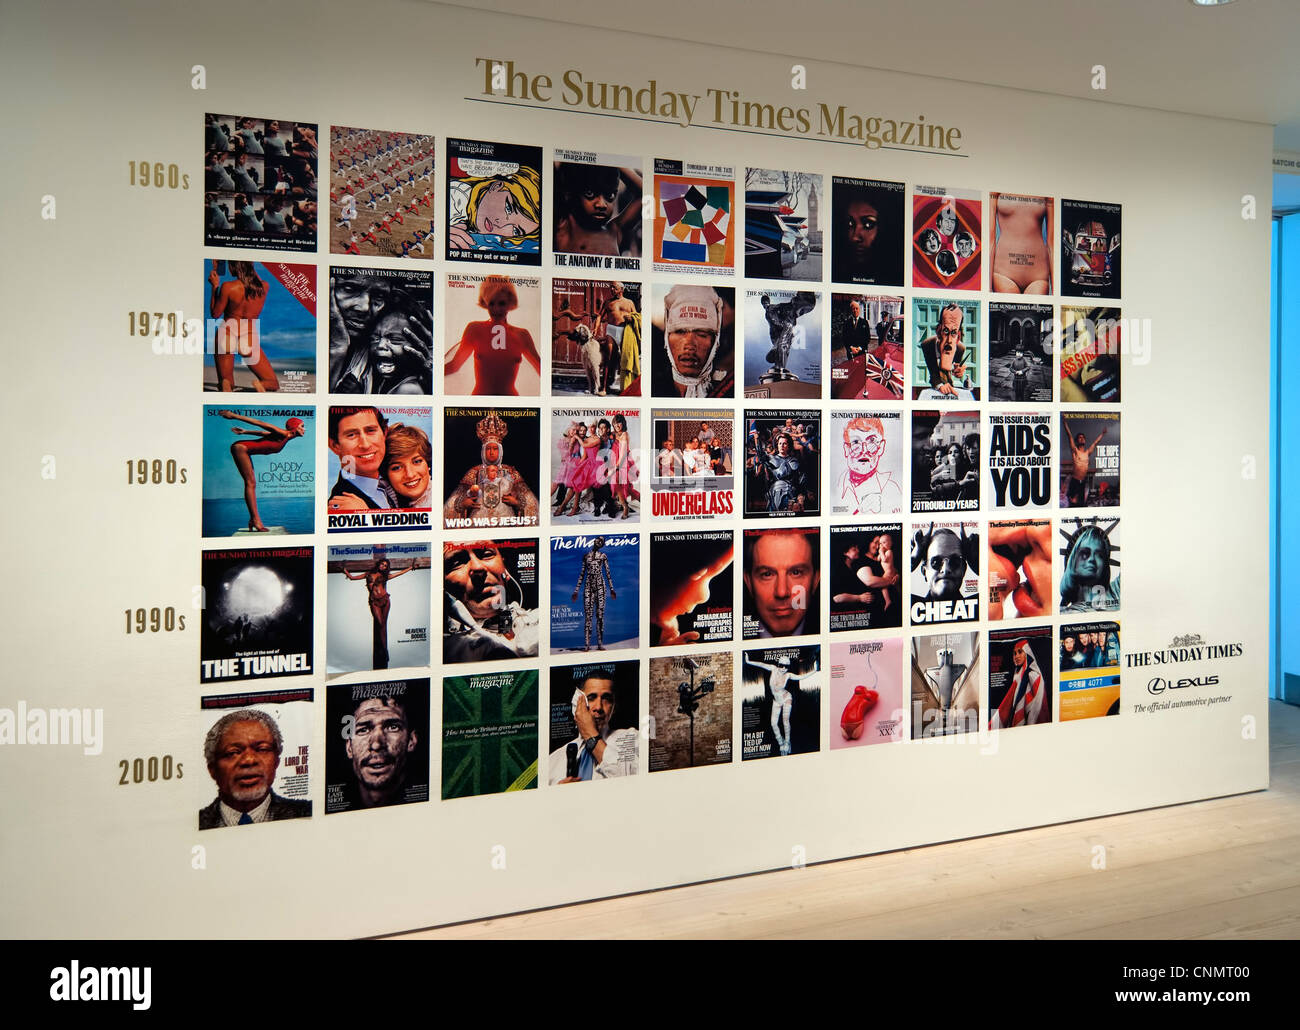 Sunday Times Exhibition, Saatchi Gallery, London - Stock Image